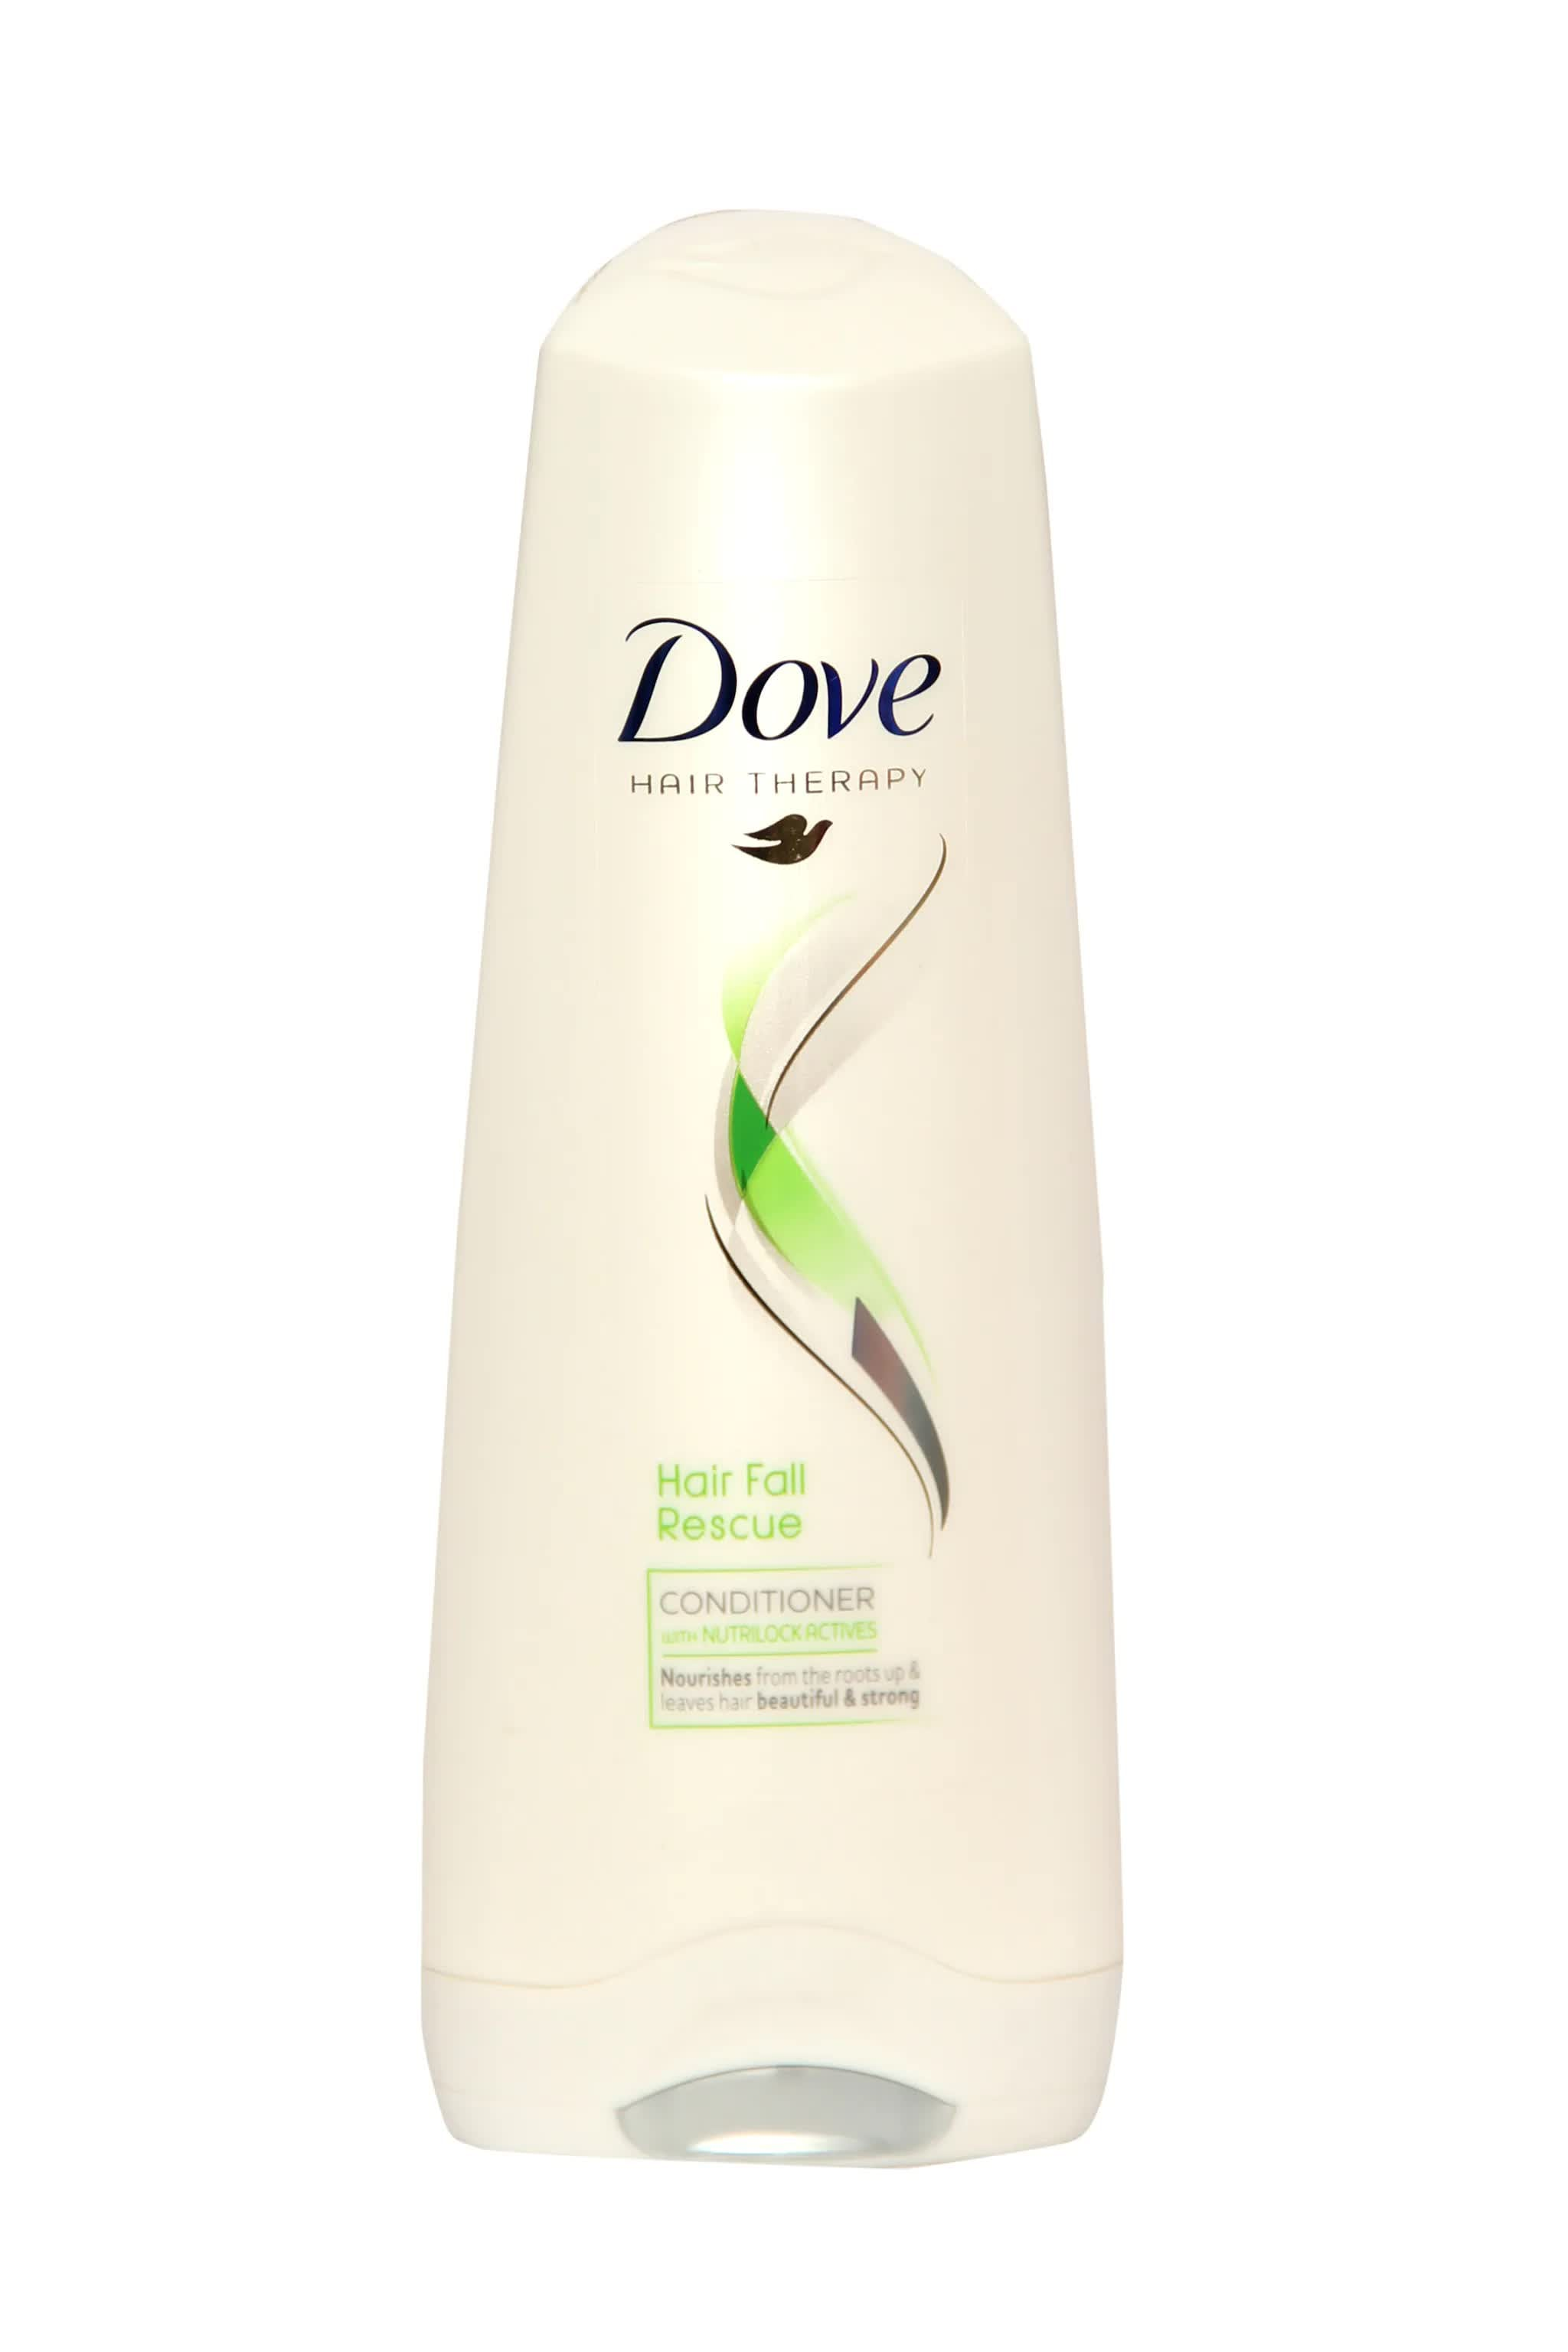 Dove Hair Therapy Hair Fall Rescue Conditioner 180 Ml